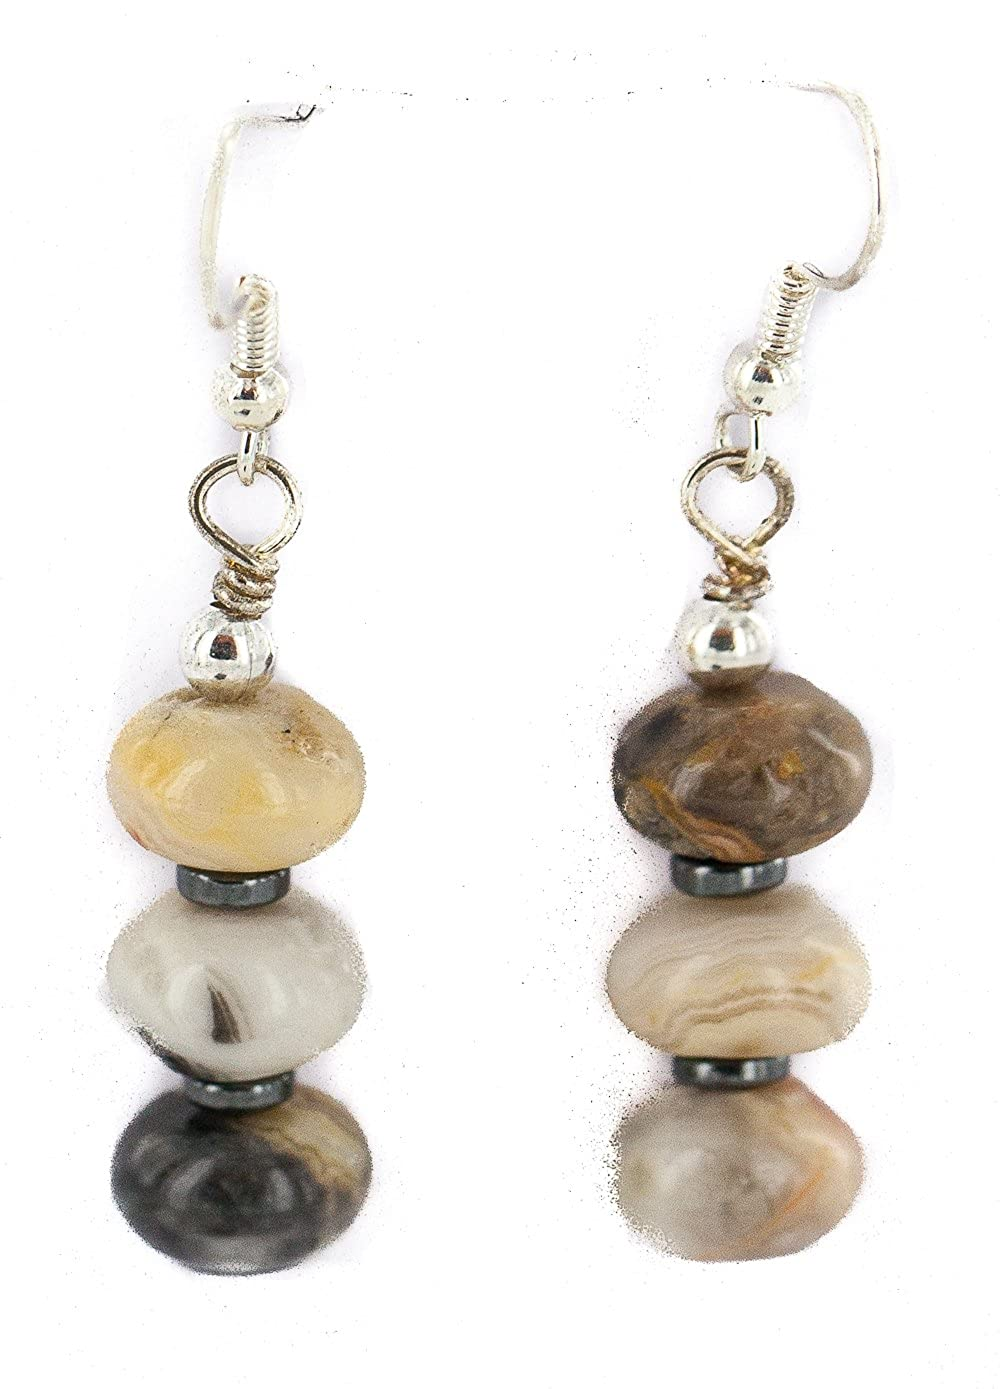 $80Tag Silver Hooks Certified Navajo Natural Agate Native Dangle Earrings 18290-14 Made By Loma Siiva